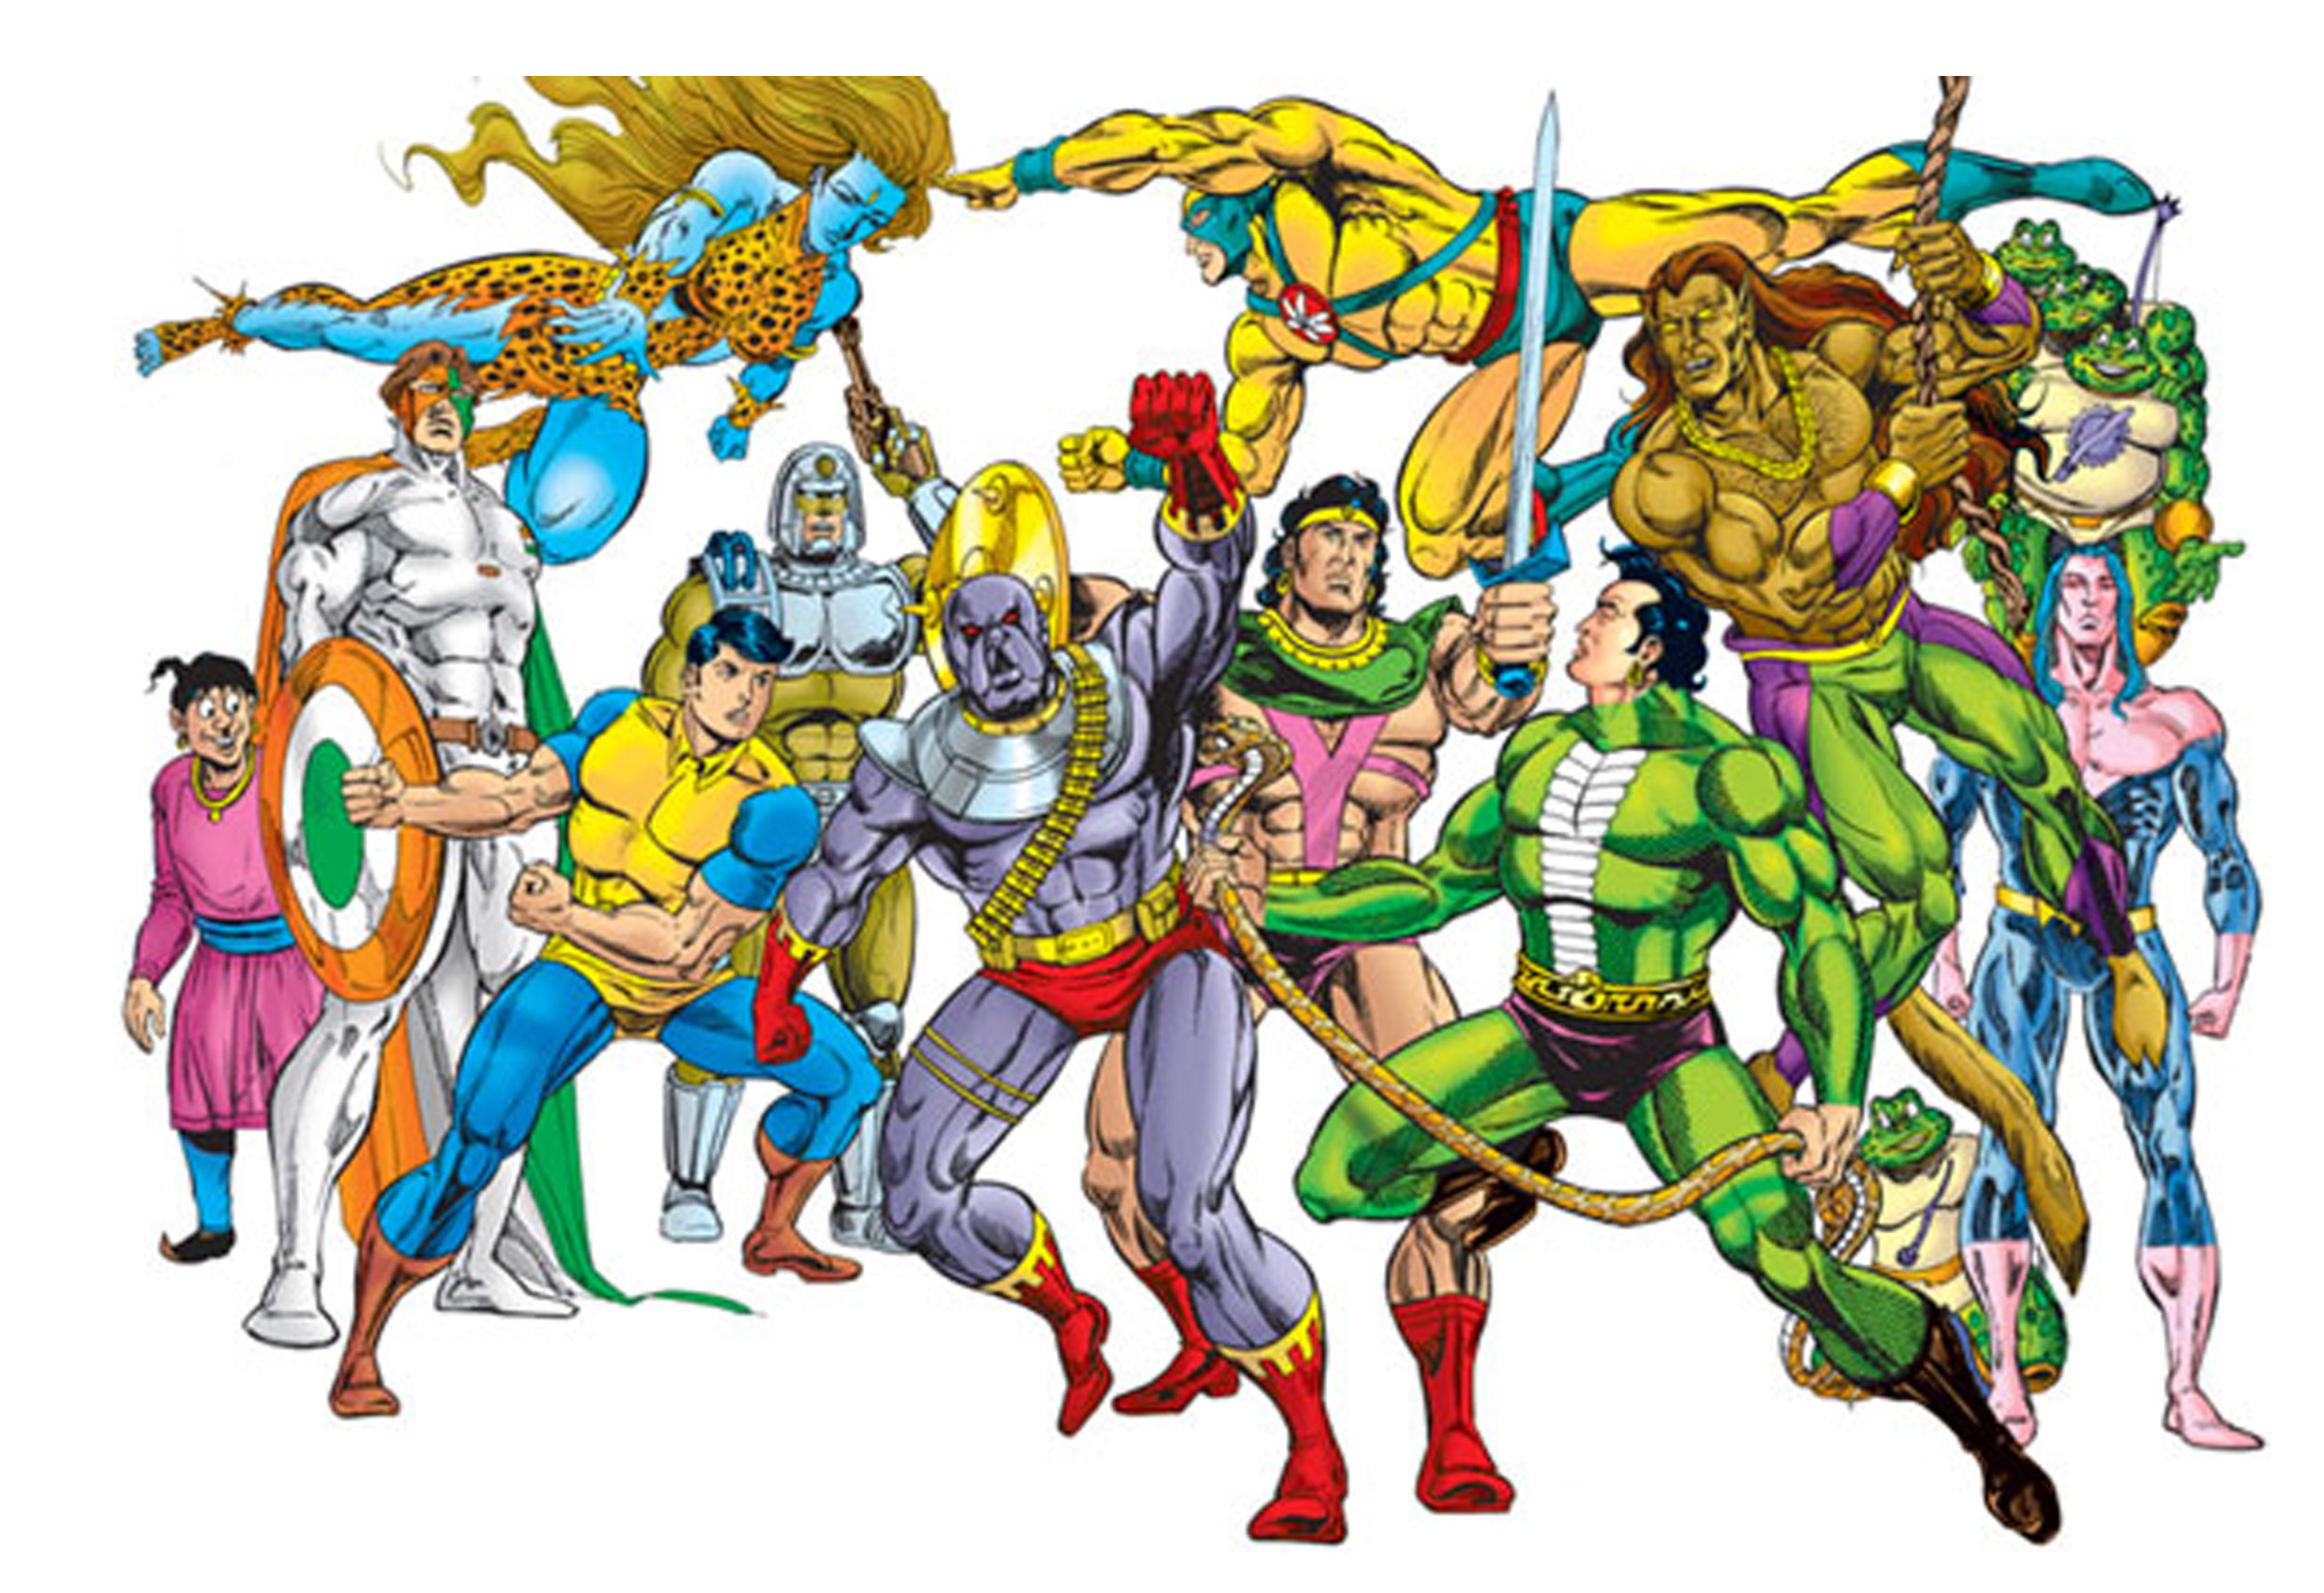 The Veterans of Indian Comics « The Hooded Utilitarian.